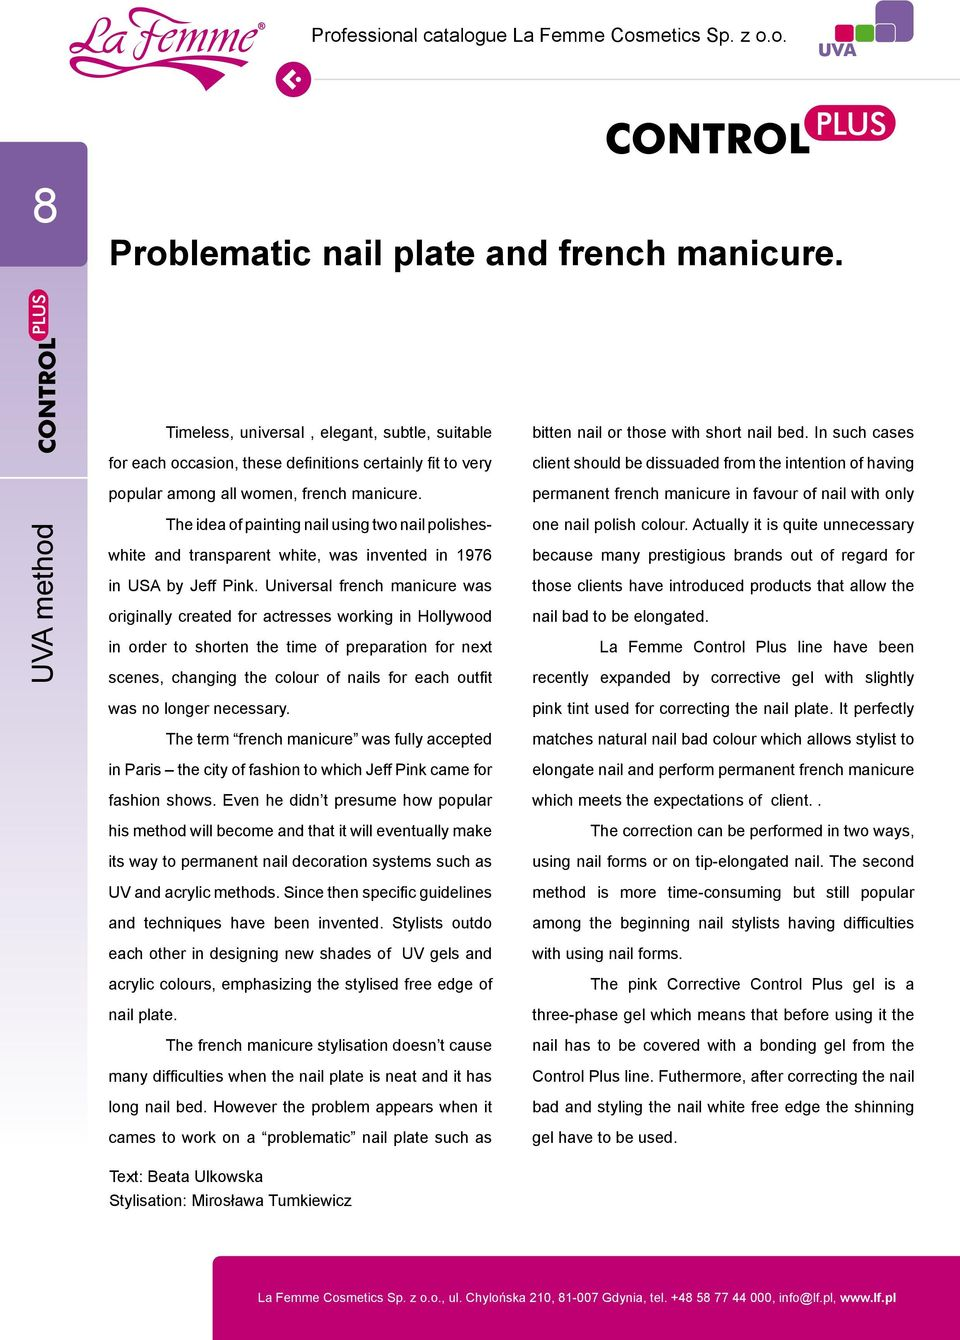 The idea of painting nail using two nail polisheswhite and transparent white, was invented in 1976 in USA by Jeff Pink.